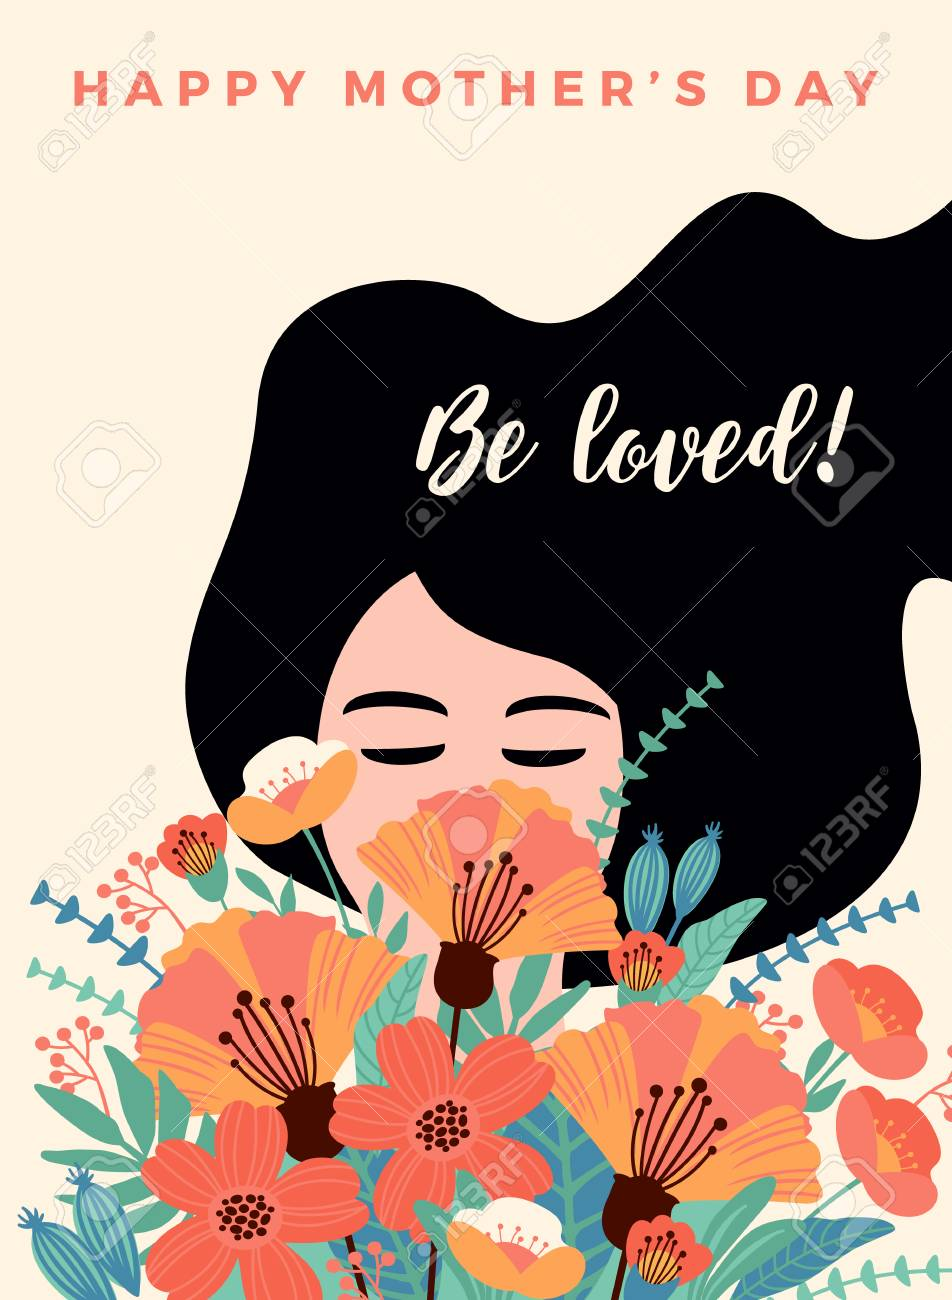 Happy Mothers Day. Vector illustration with woman and flowers. Design element for card, poster, banner, and other use. - 98534073